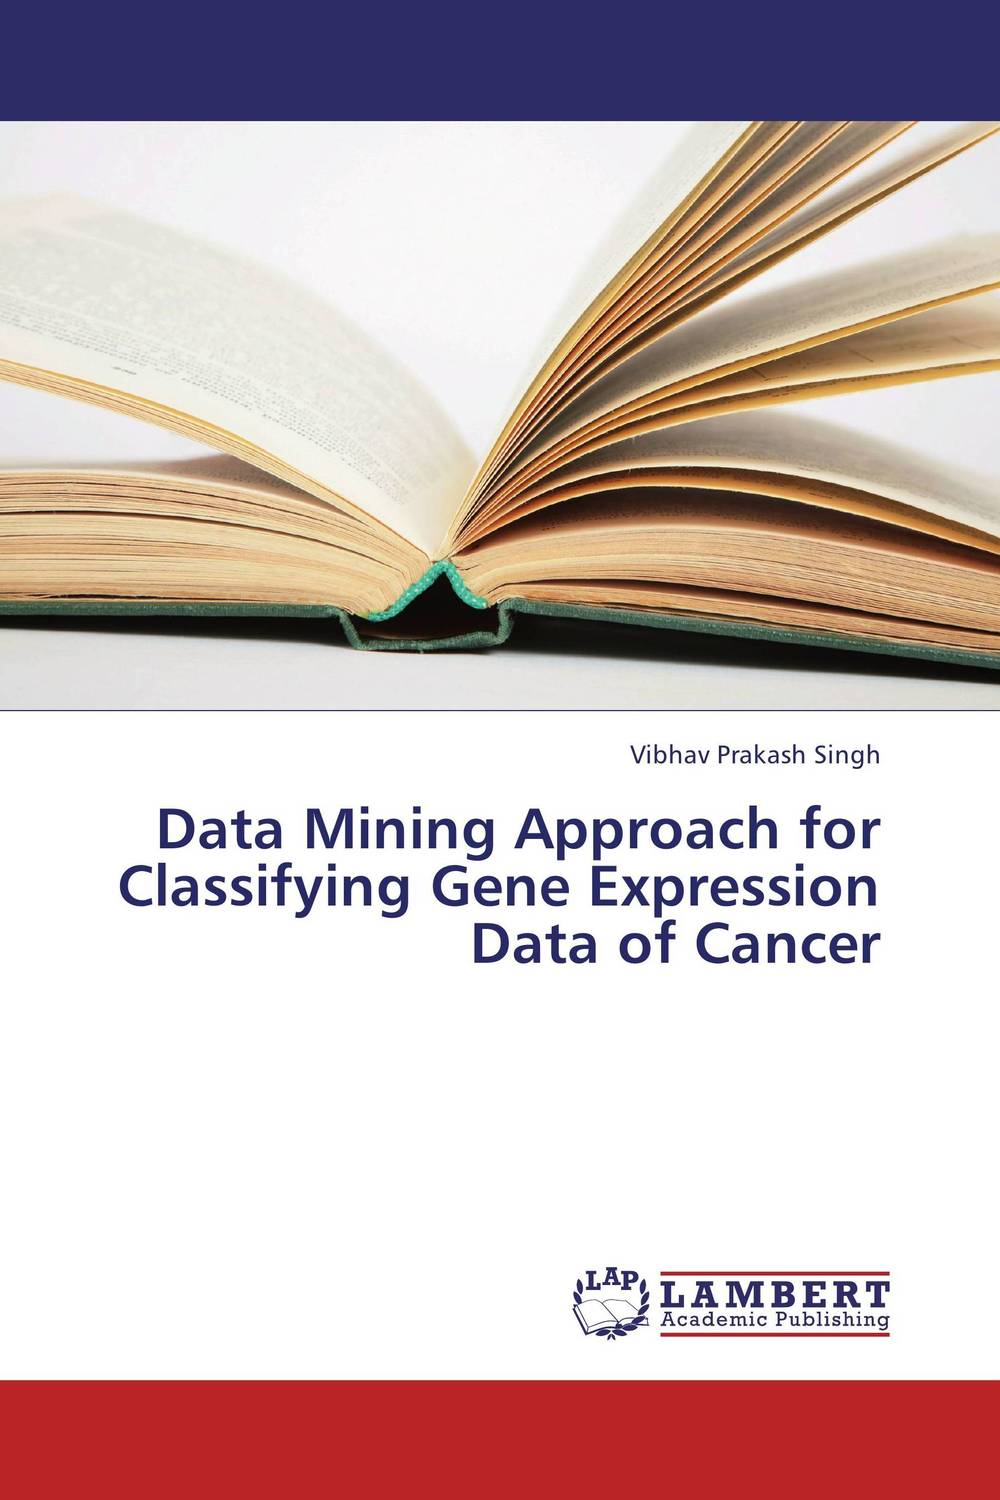 Data Mining Approach for Classifying Gene Expression Data of Cancer frequent pattern discovery from gene expression data